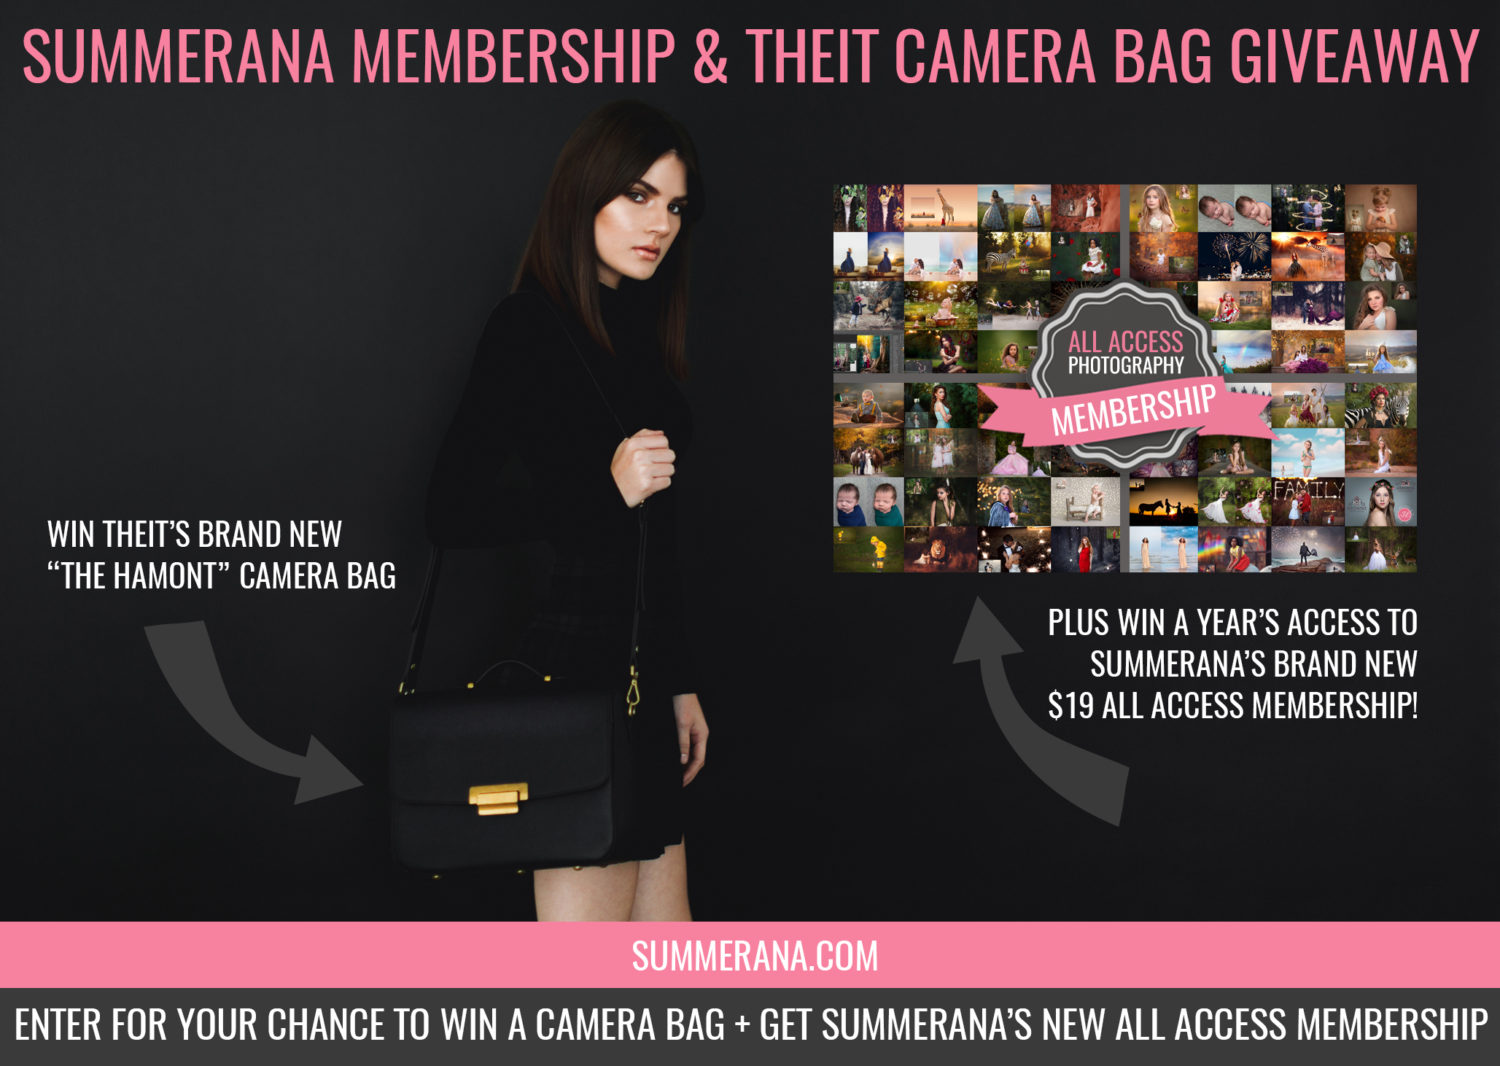 summeranan-photoshop-actions-for-photographers-theit-camera-bag-giveaway